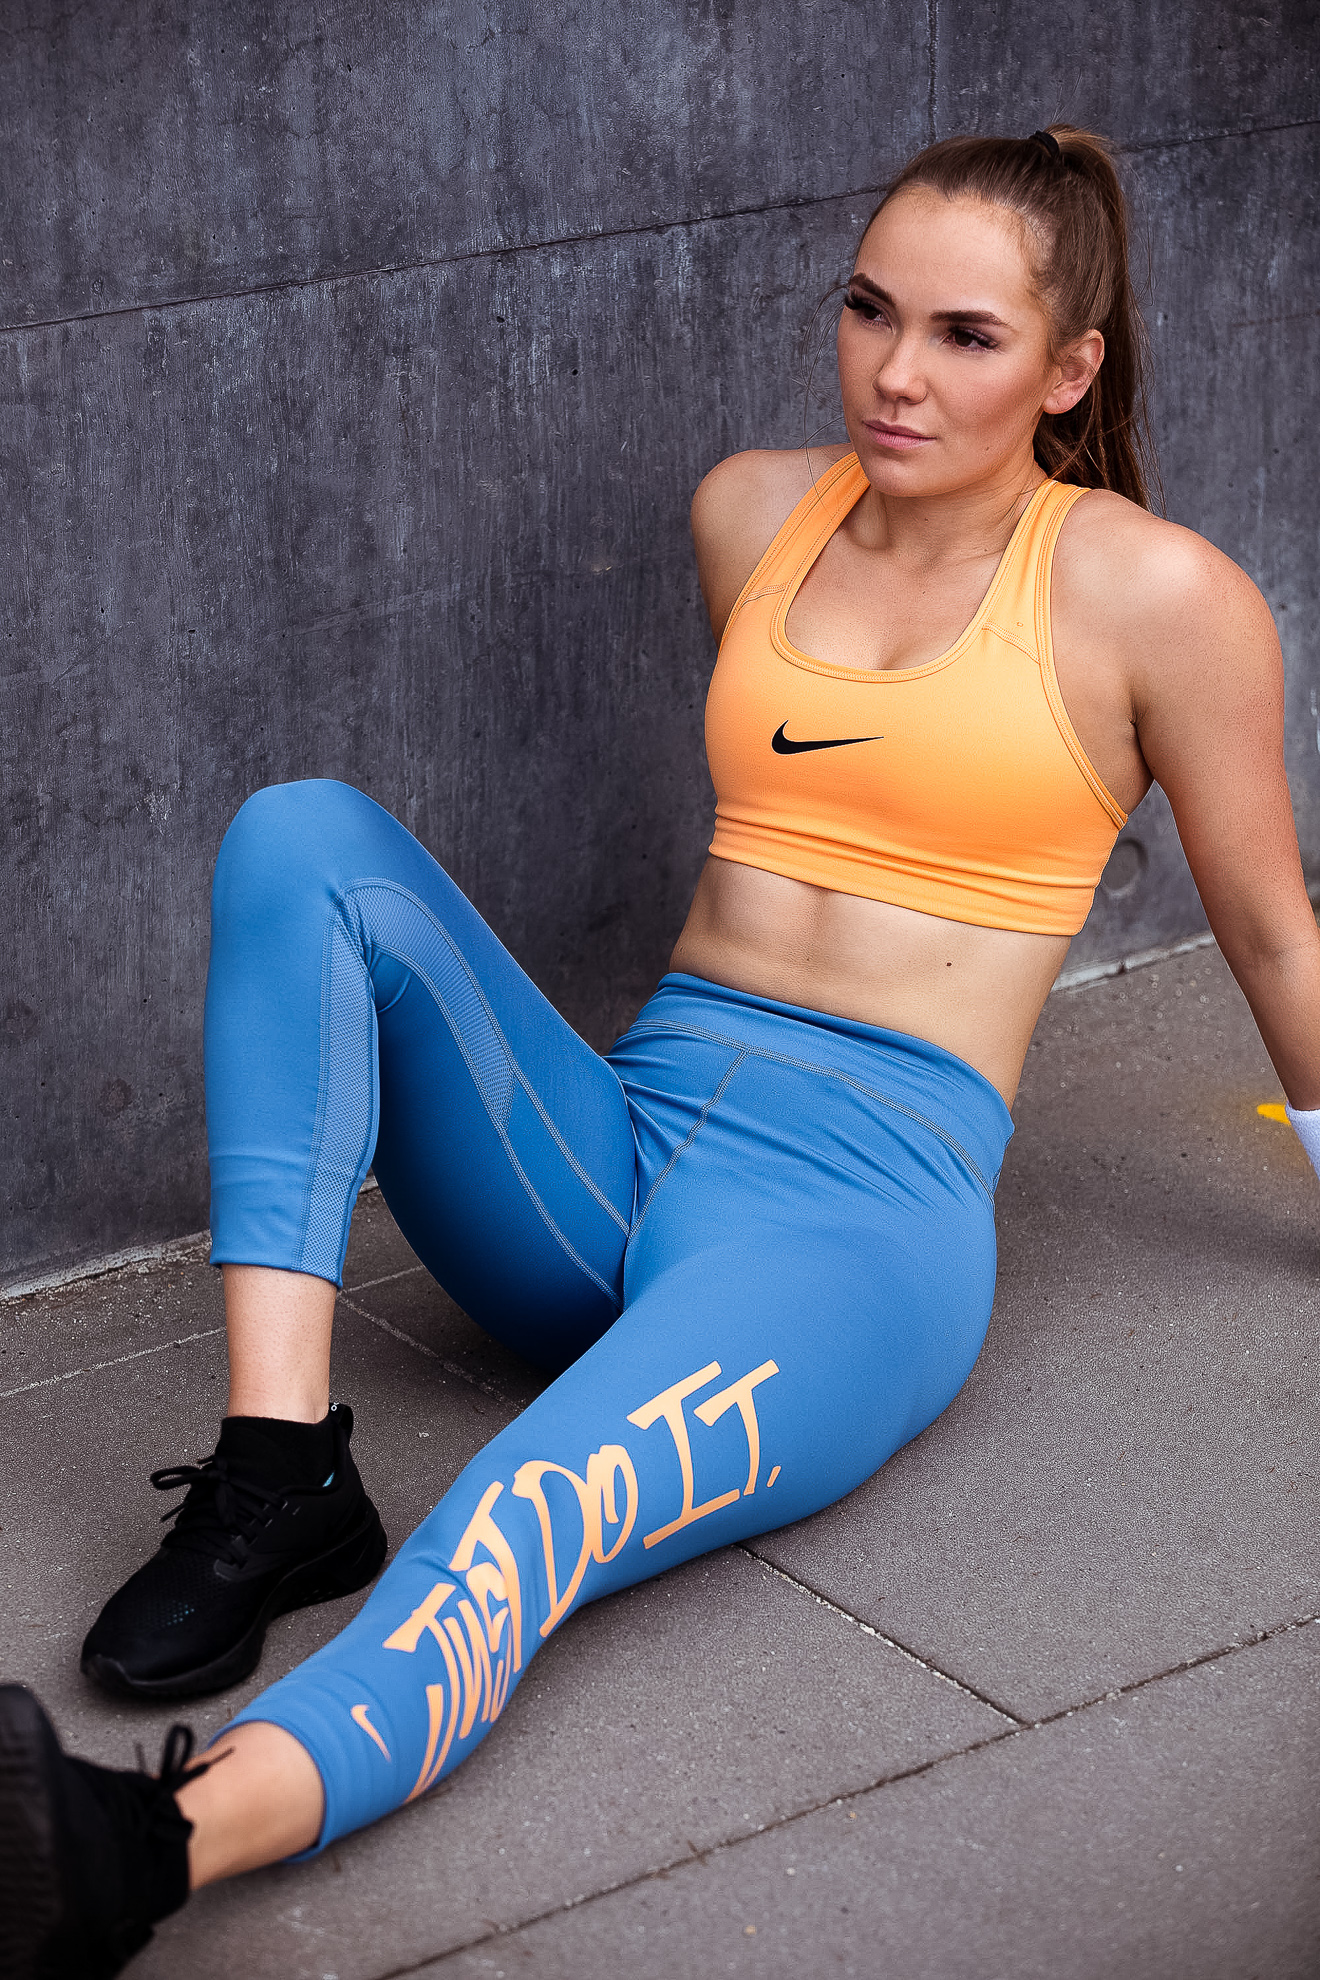 Ruby seated wearing Nike just do it blue tracksuit pants and orange Nike crop top